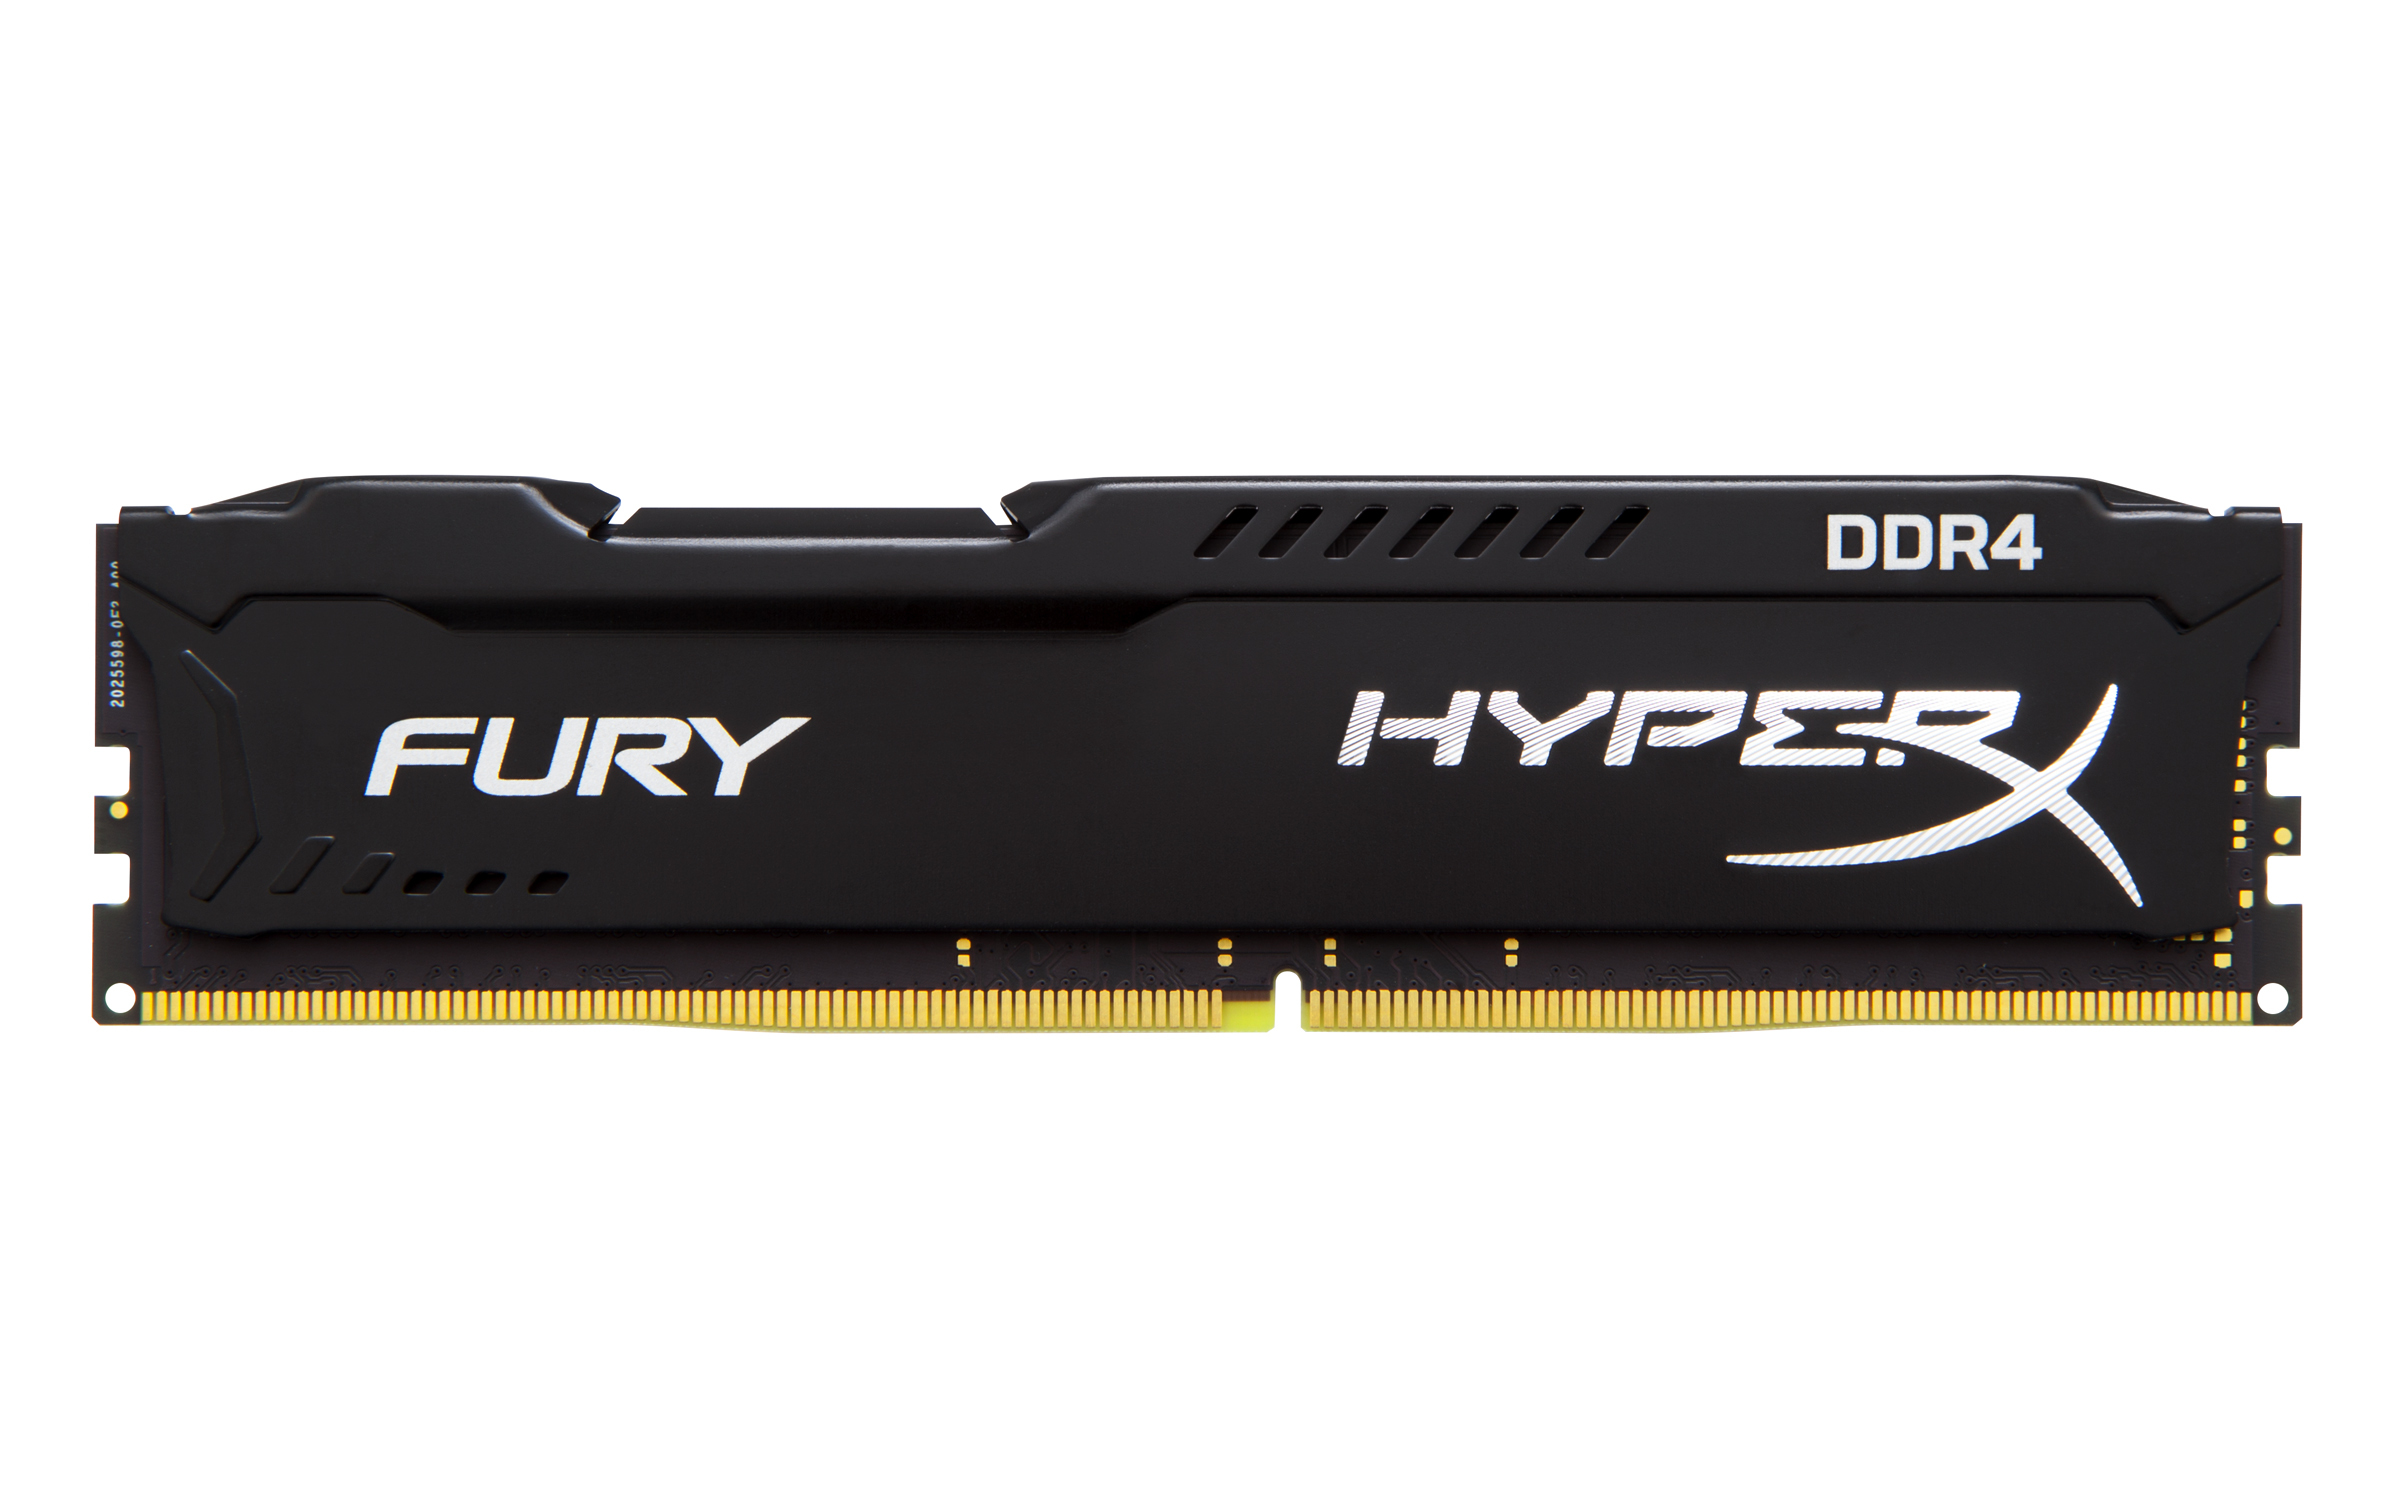 Ram Kingston 8GB 3000Mhz DDR4 CL15 DIMM Savage Hyp